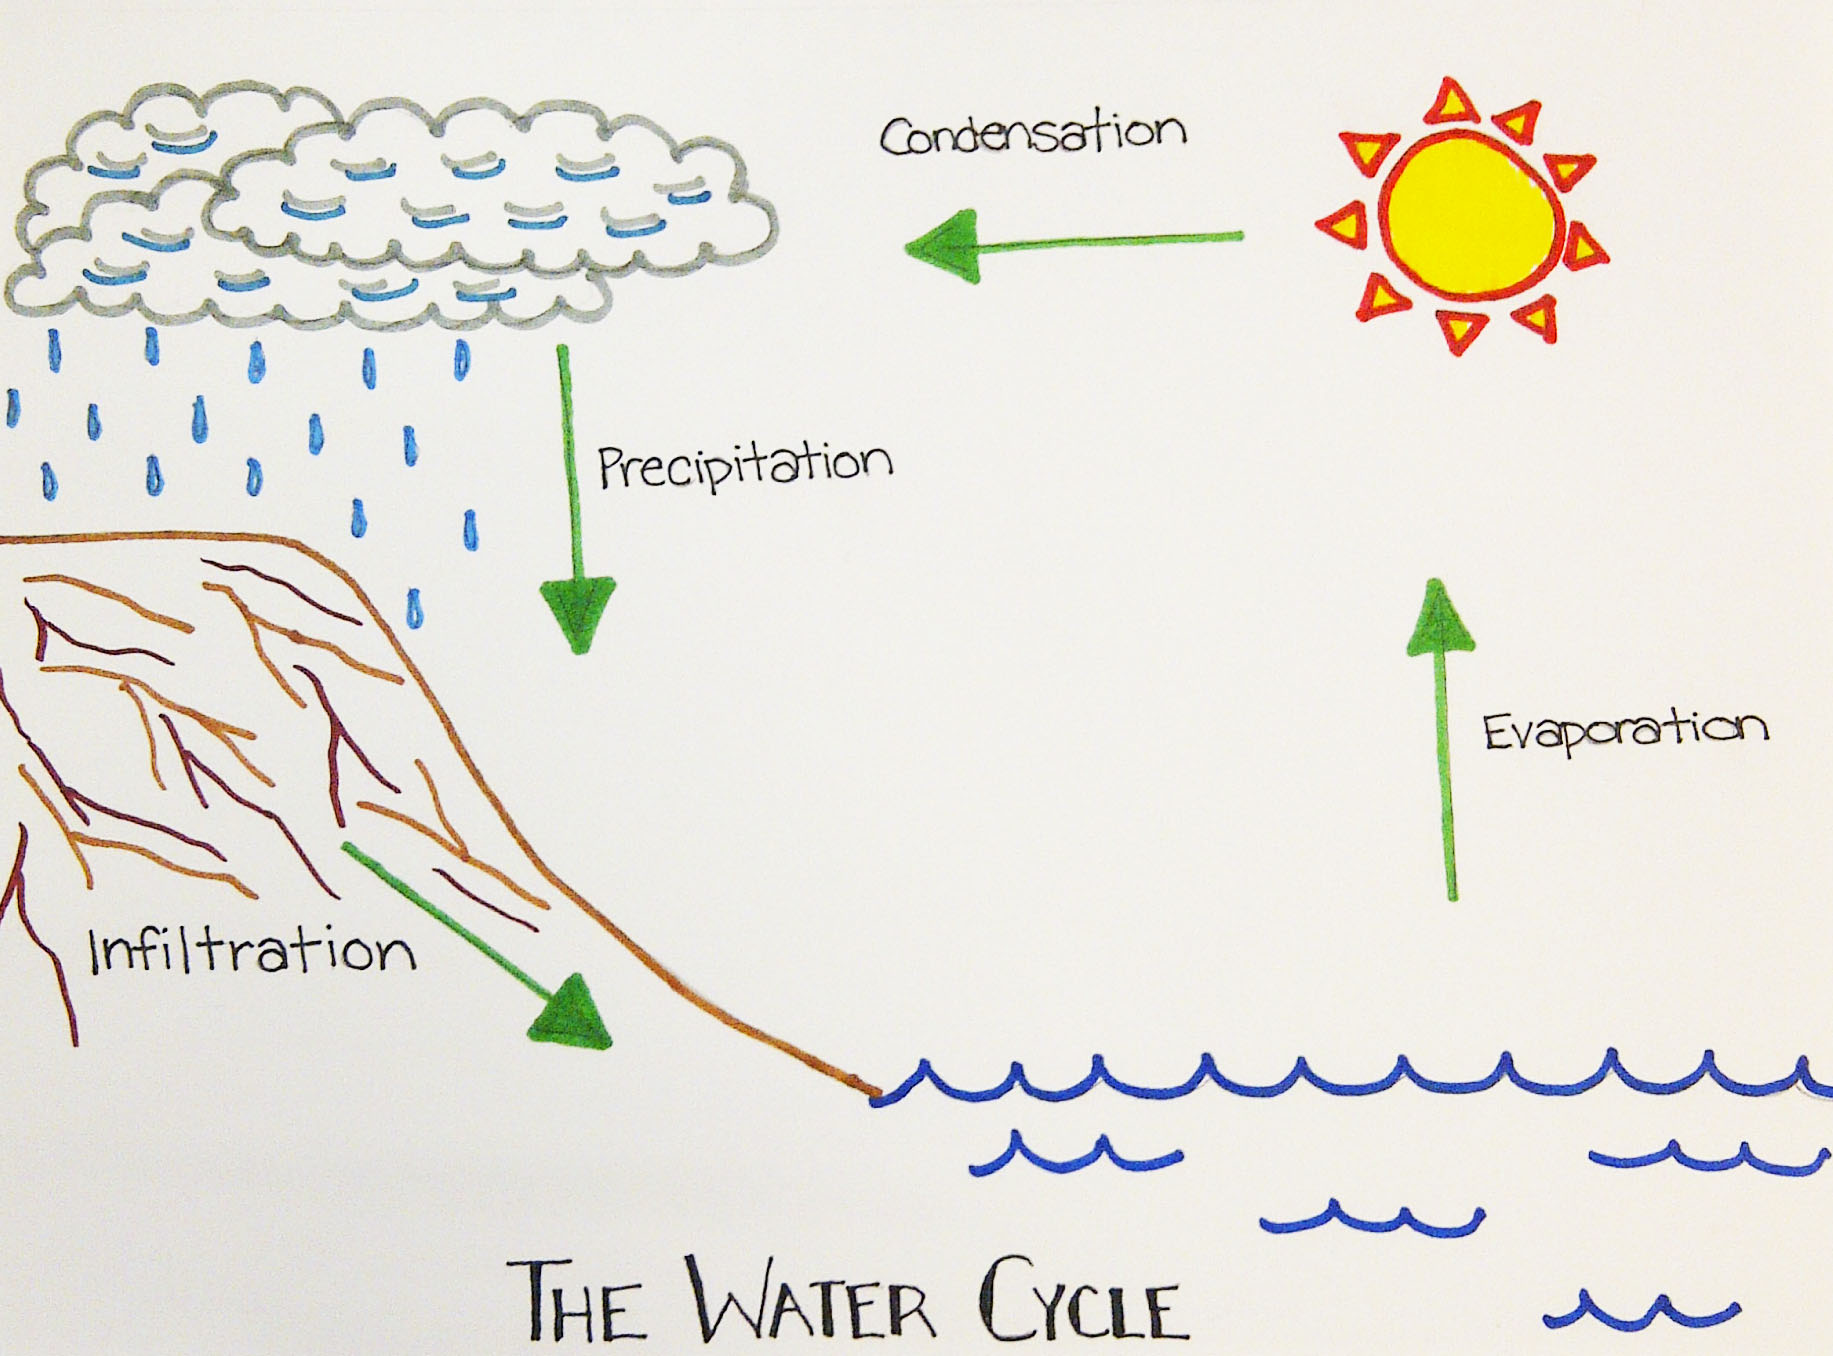 water cycle diagram with explanation rv power plug wiring visual comm livhilton